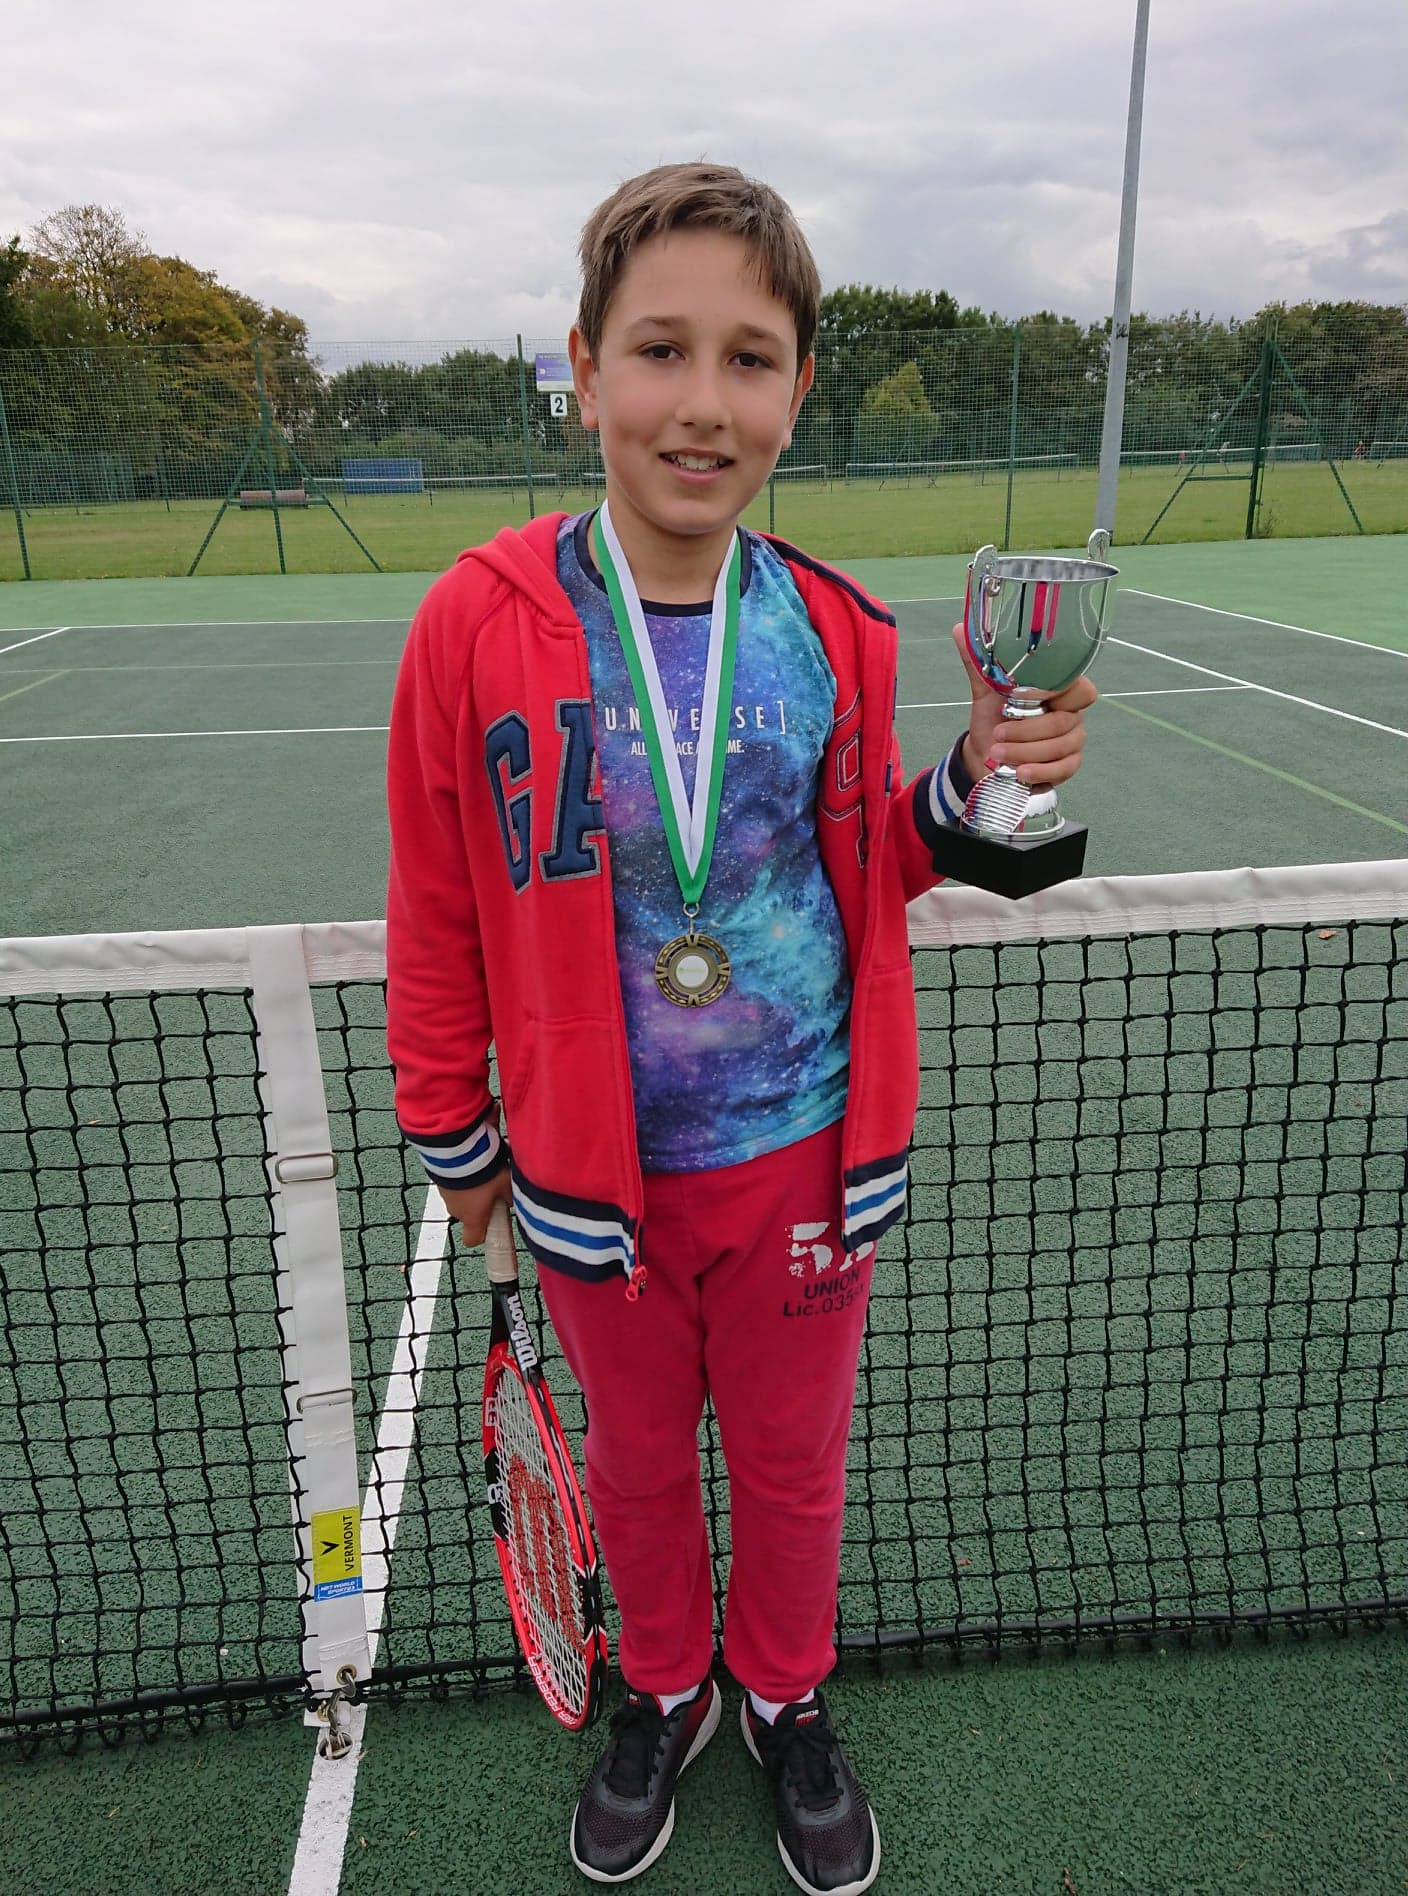 Max winning the local tennis championships